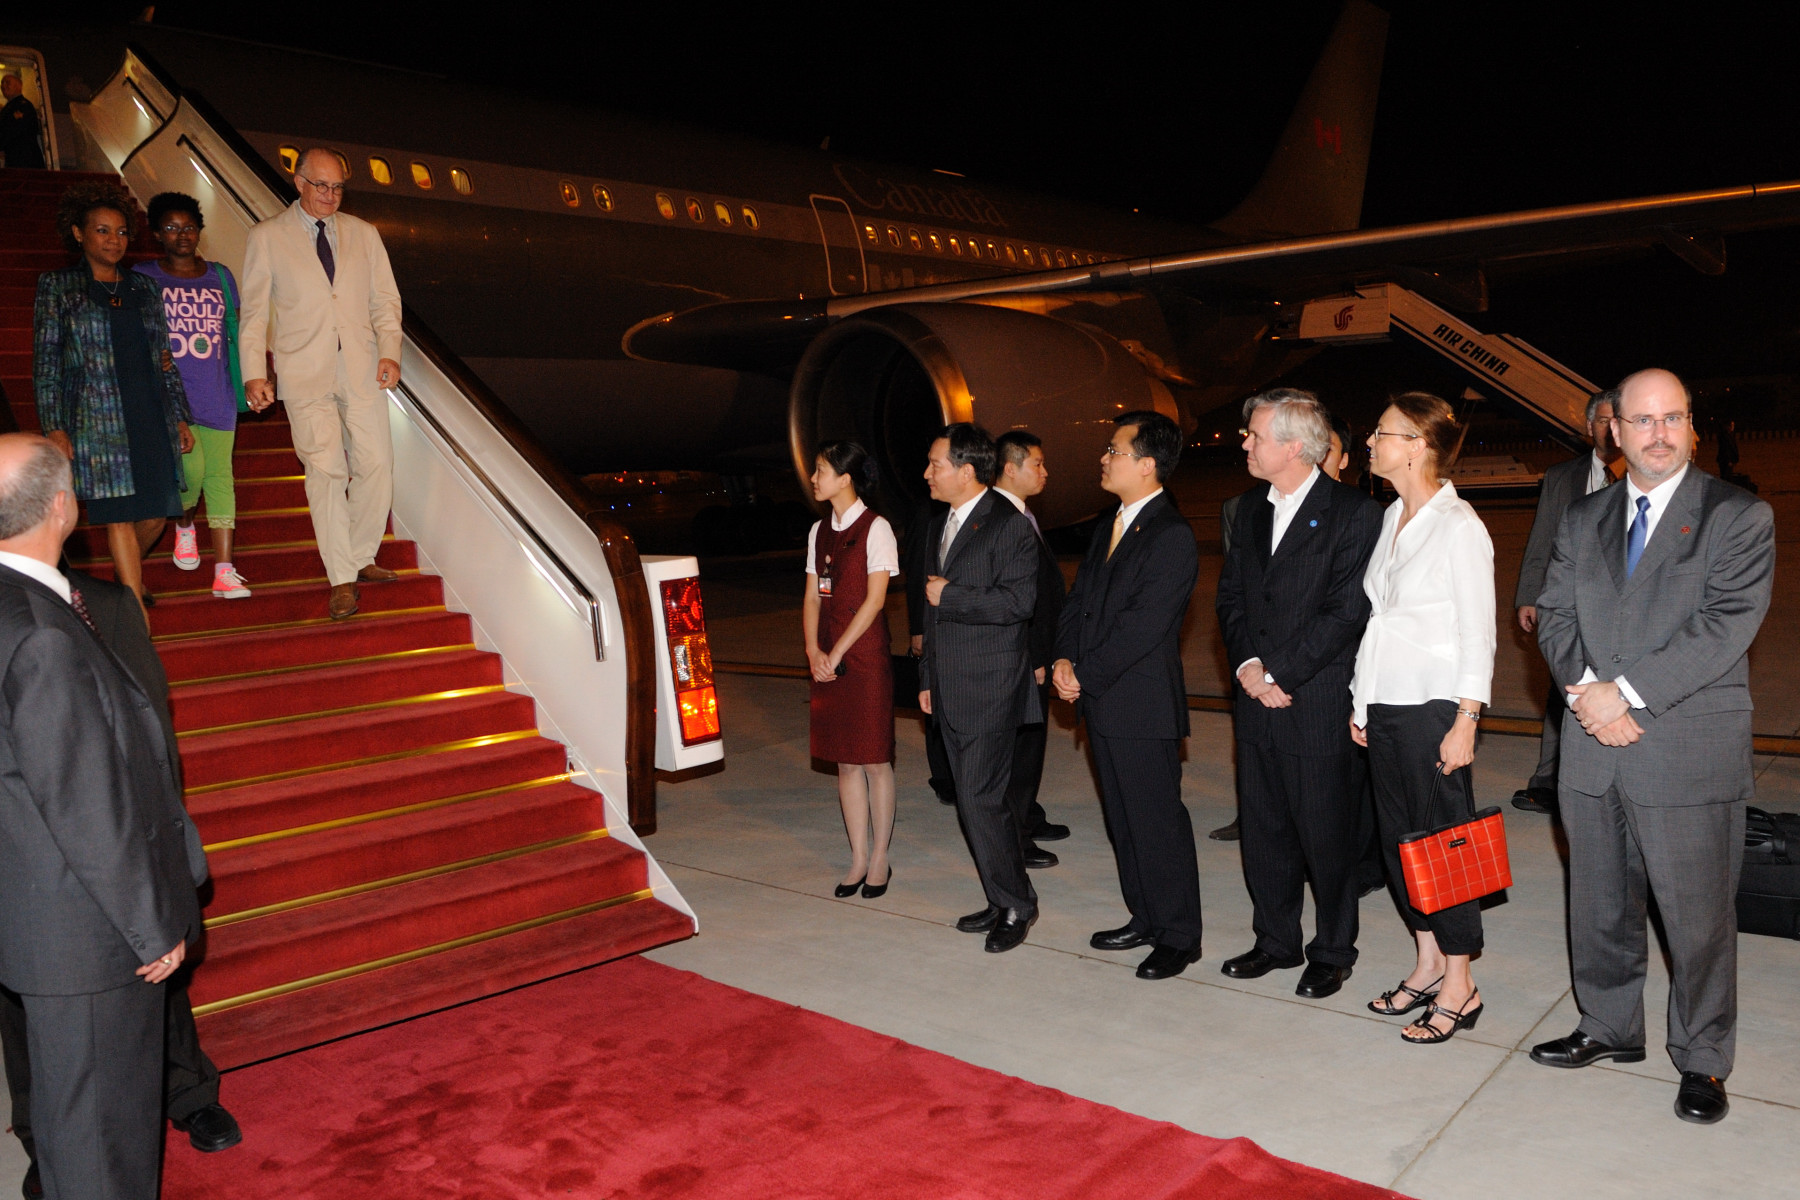 Their Excellencies arrived in China's capital Beijing.